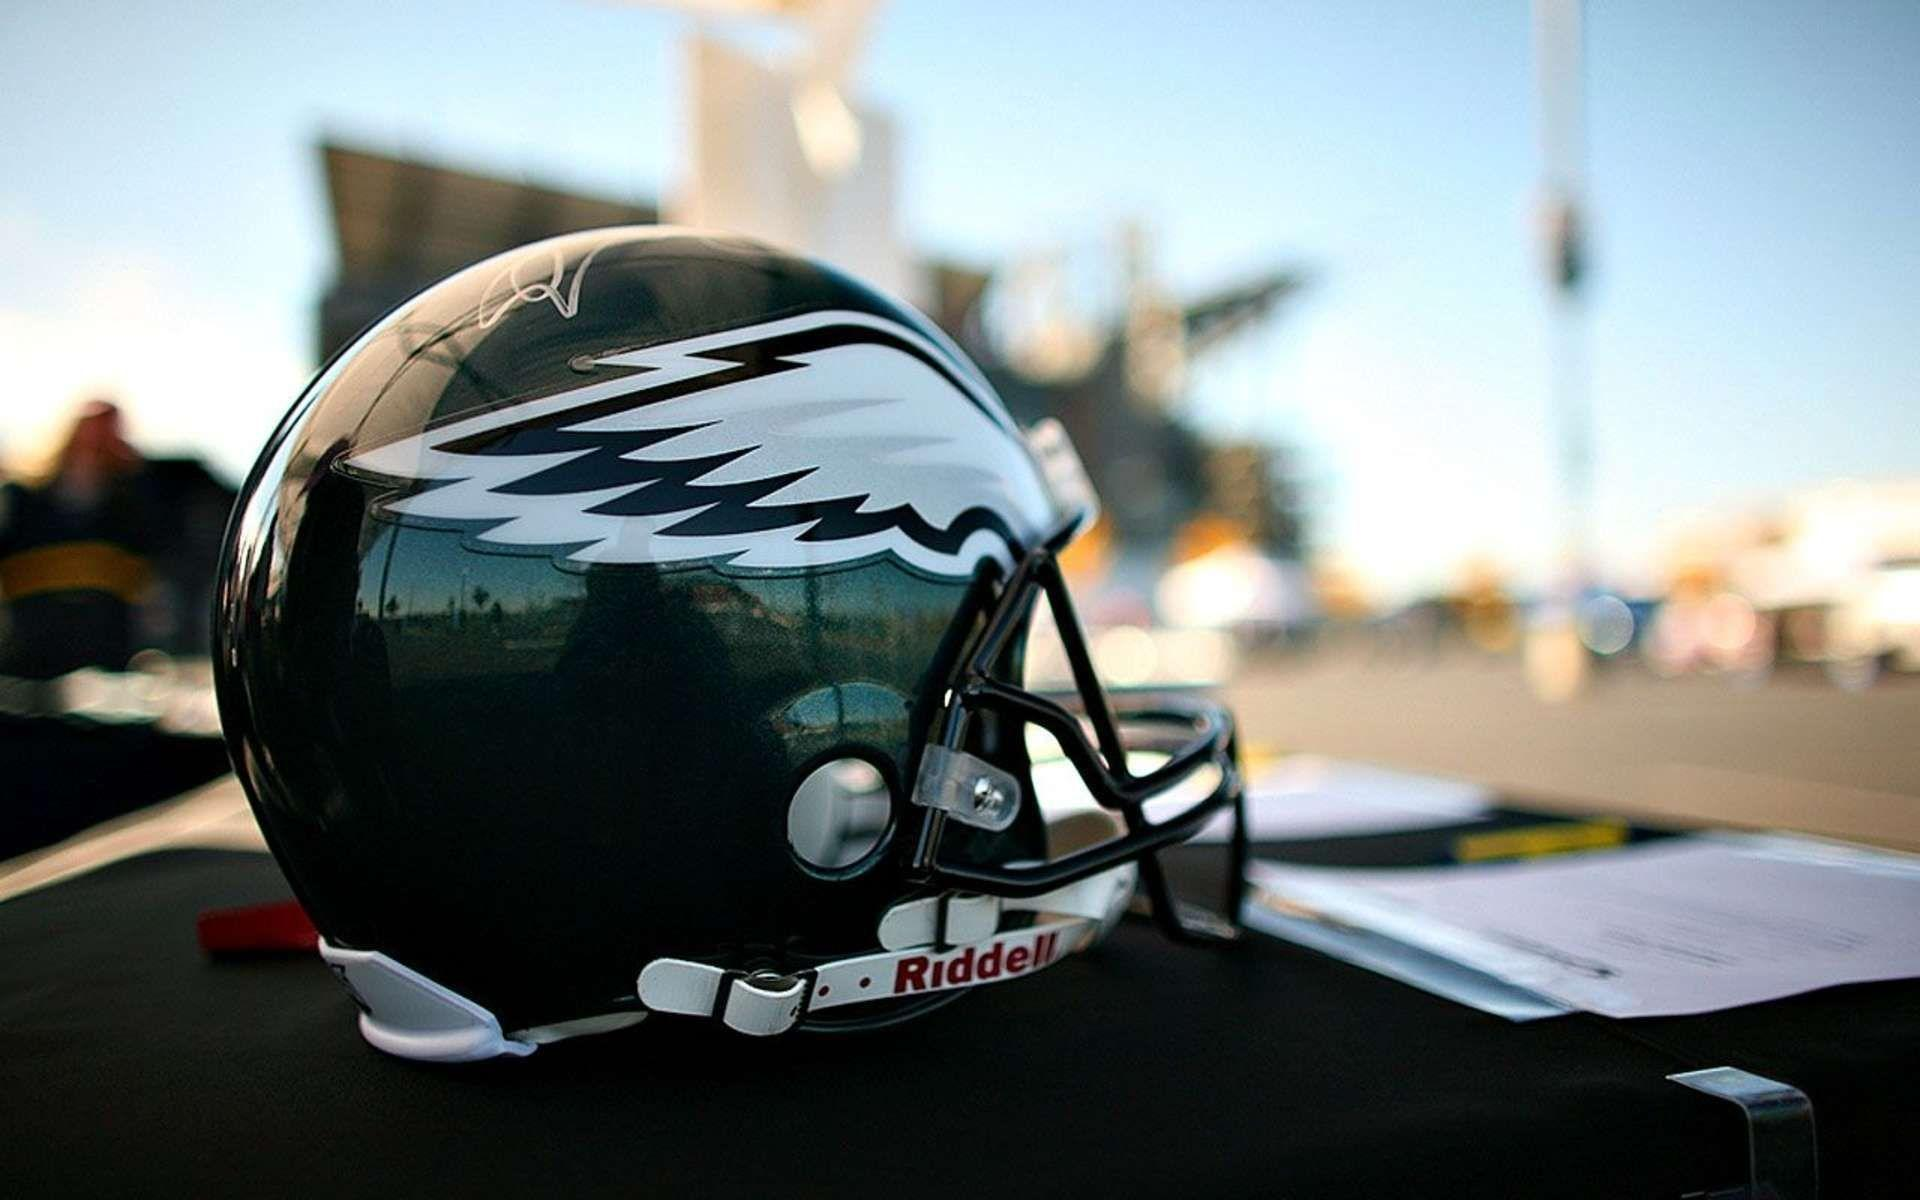 Philadelphia Eagles wallpapers Download Philadelphia Eagles